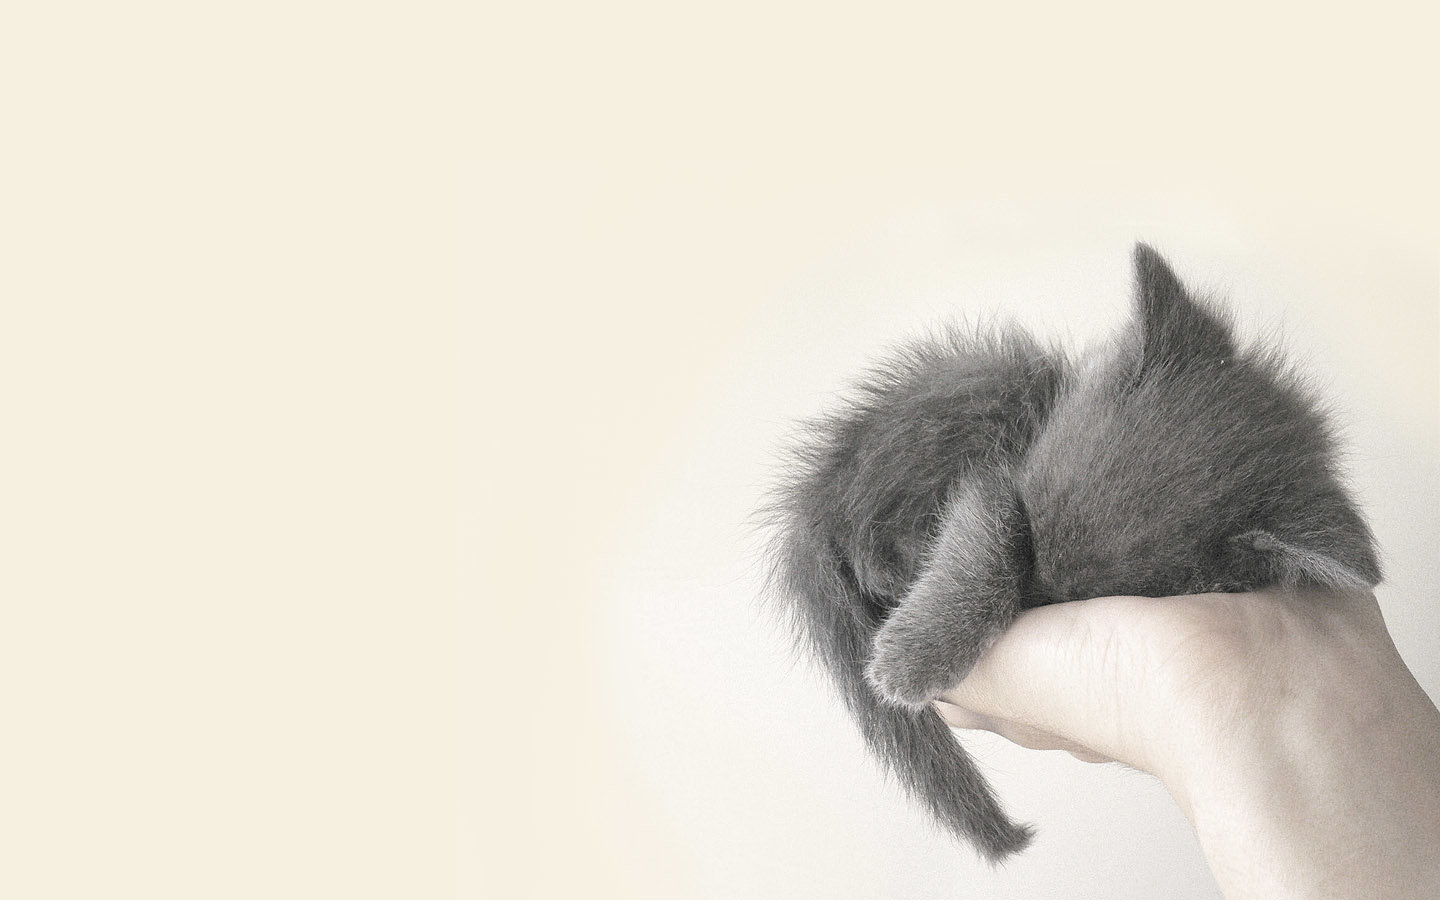 Free Kitten high quality wallpaper ID:429837 for hd 1440x900 PC